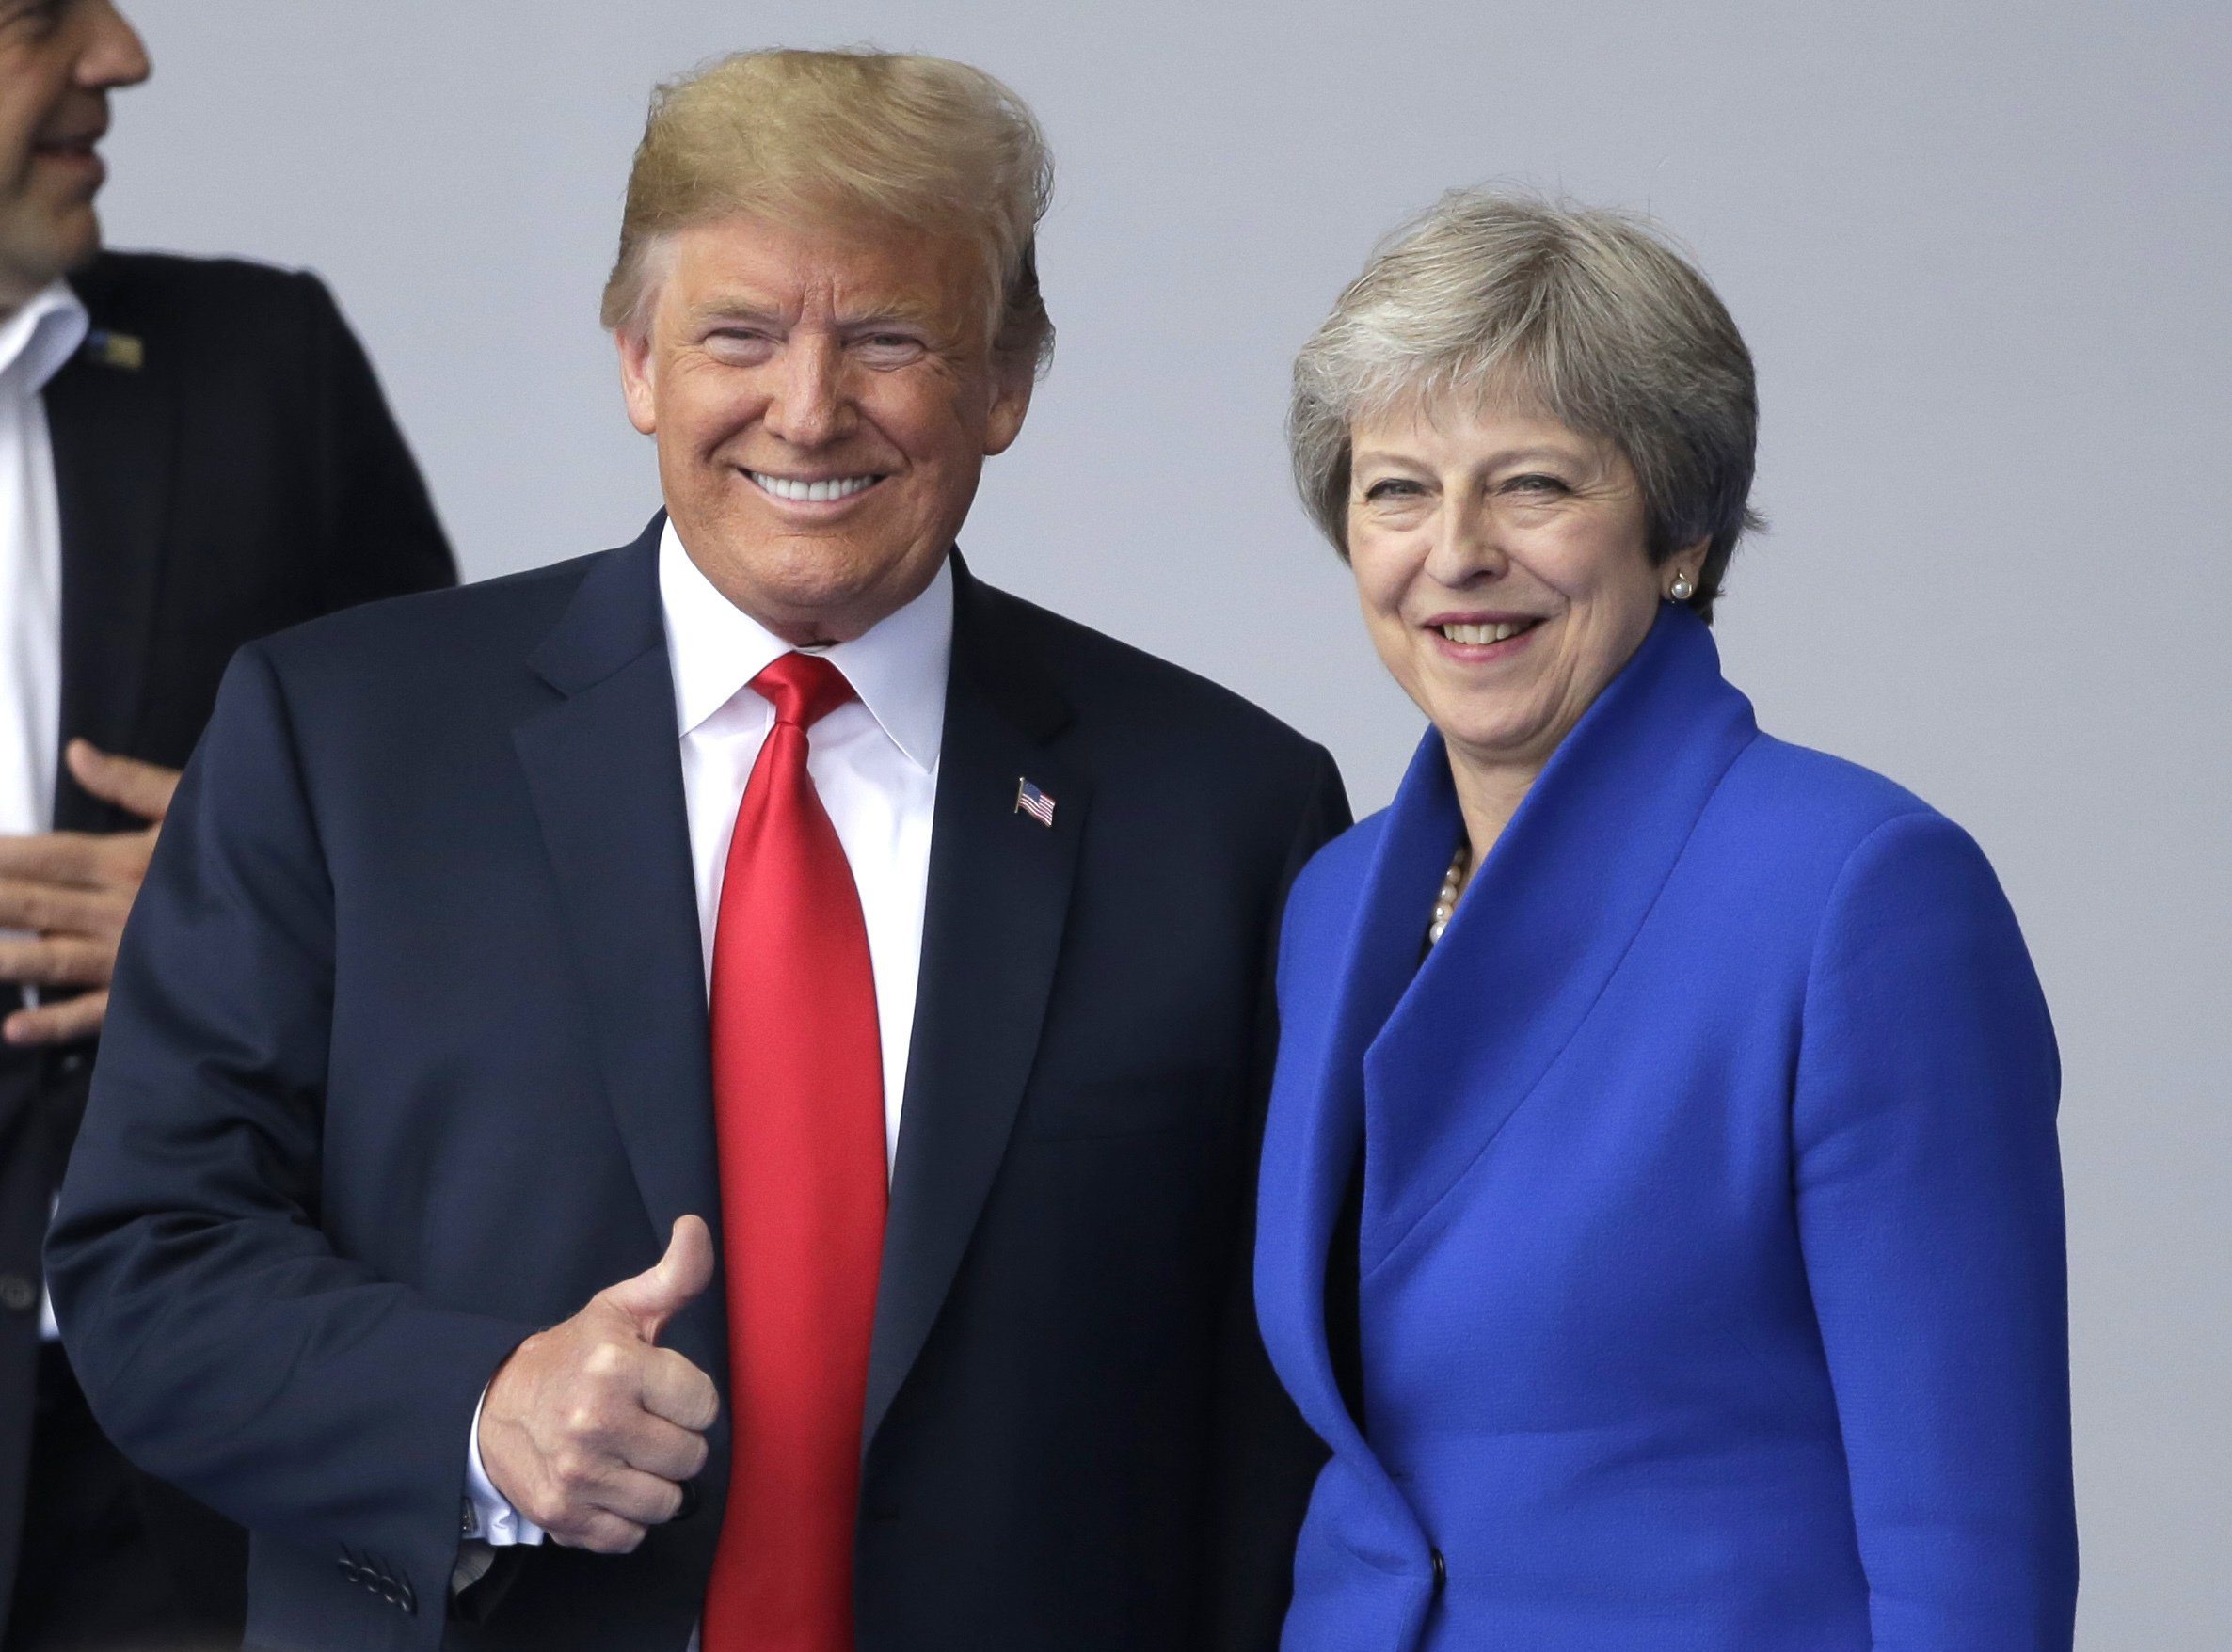 """In this July 11, 2018, photo, U.S. President Donald Trump, left, talks to British Prime Minister Theresa May during a summit of heads of state and government at NATO headquarters in Brussels. Trump is all in for Winston Churchill during his first visit to the United Kingdom as president, paying his respects to an icon of American conservatives who coined the phrase the """"special relationship."""" Trump will join May for a black-tie dinner Thursday at Blenheim Palace, Churchill's birthplace near Oxford, at the start of his trip to England. (AP Photo/Markus Schreiber)"""